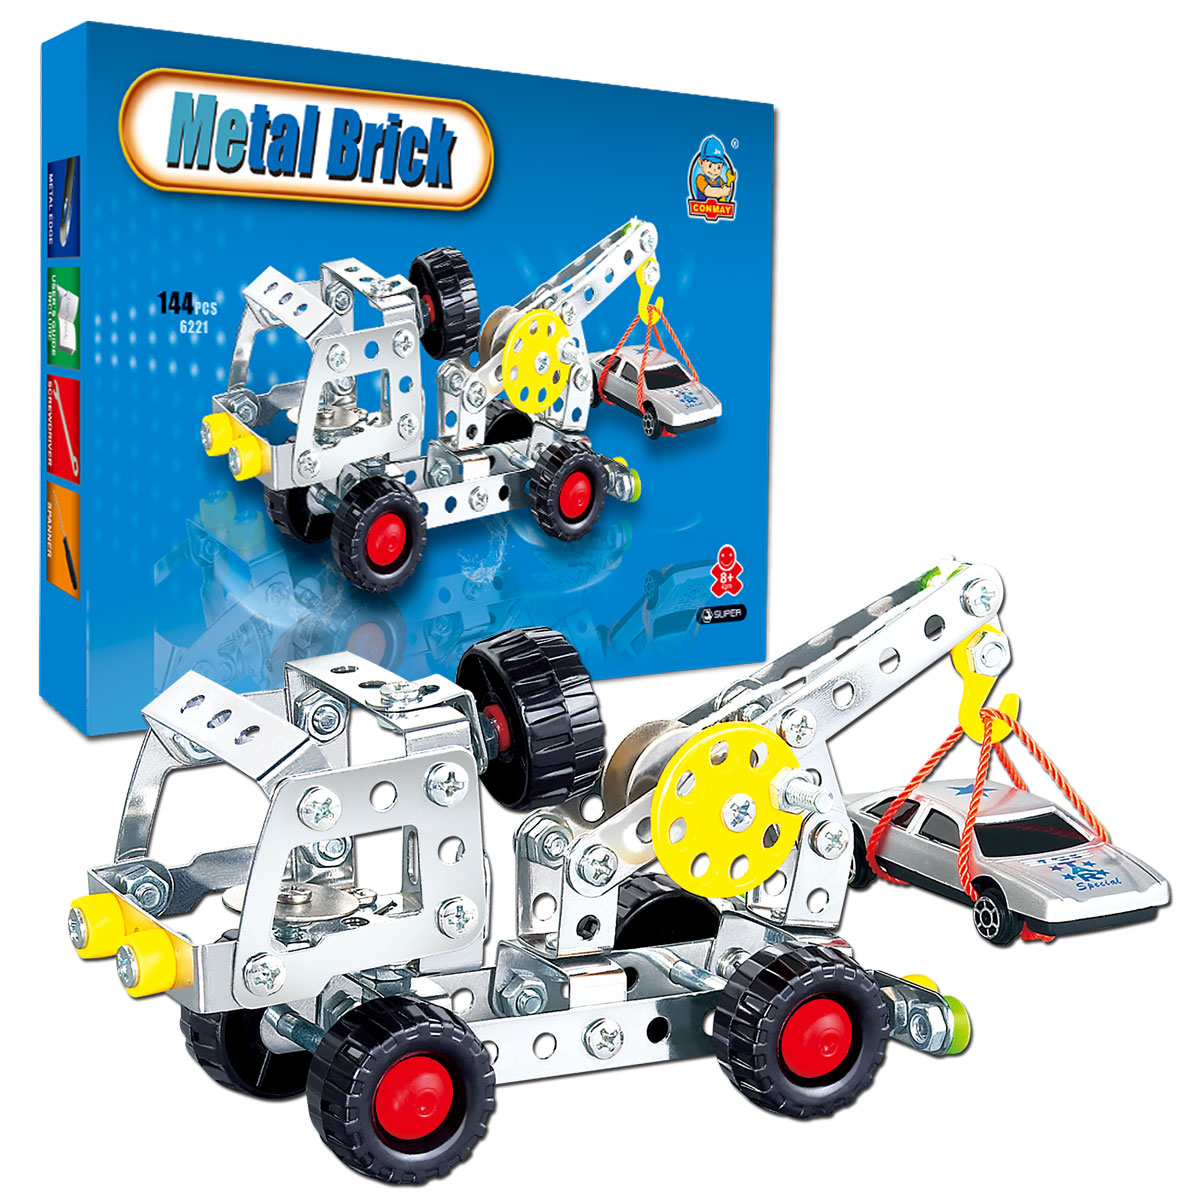 Build Your Own Car Kit >> Details About Take Apart Toy Car Kit Build Your Own Toy Creative Game For Age 5 Year Old Child